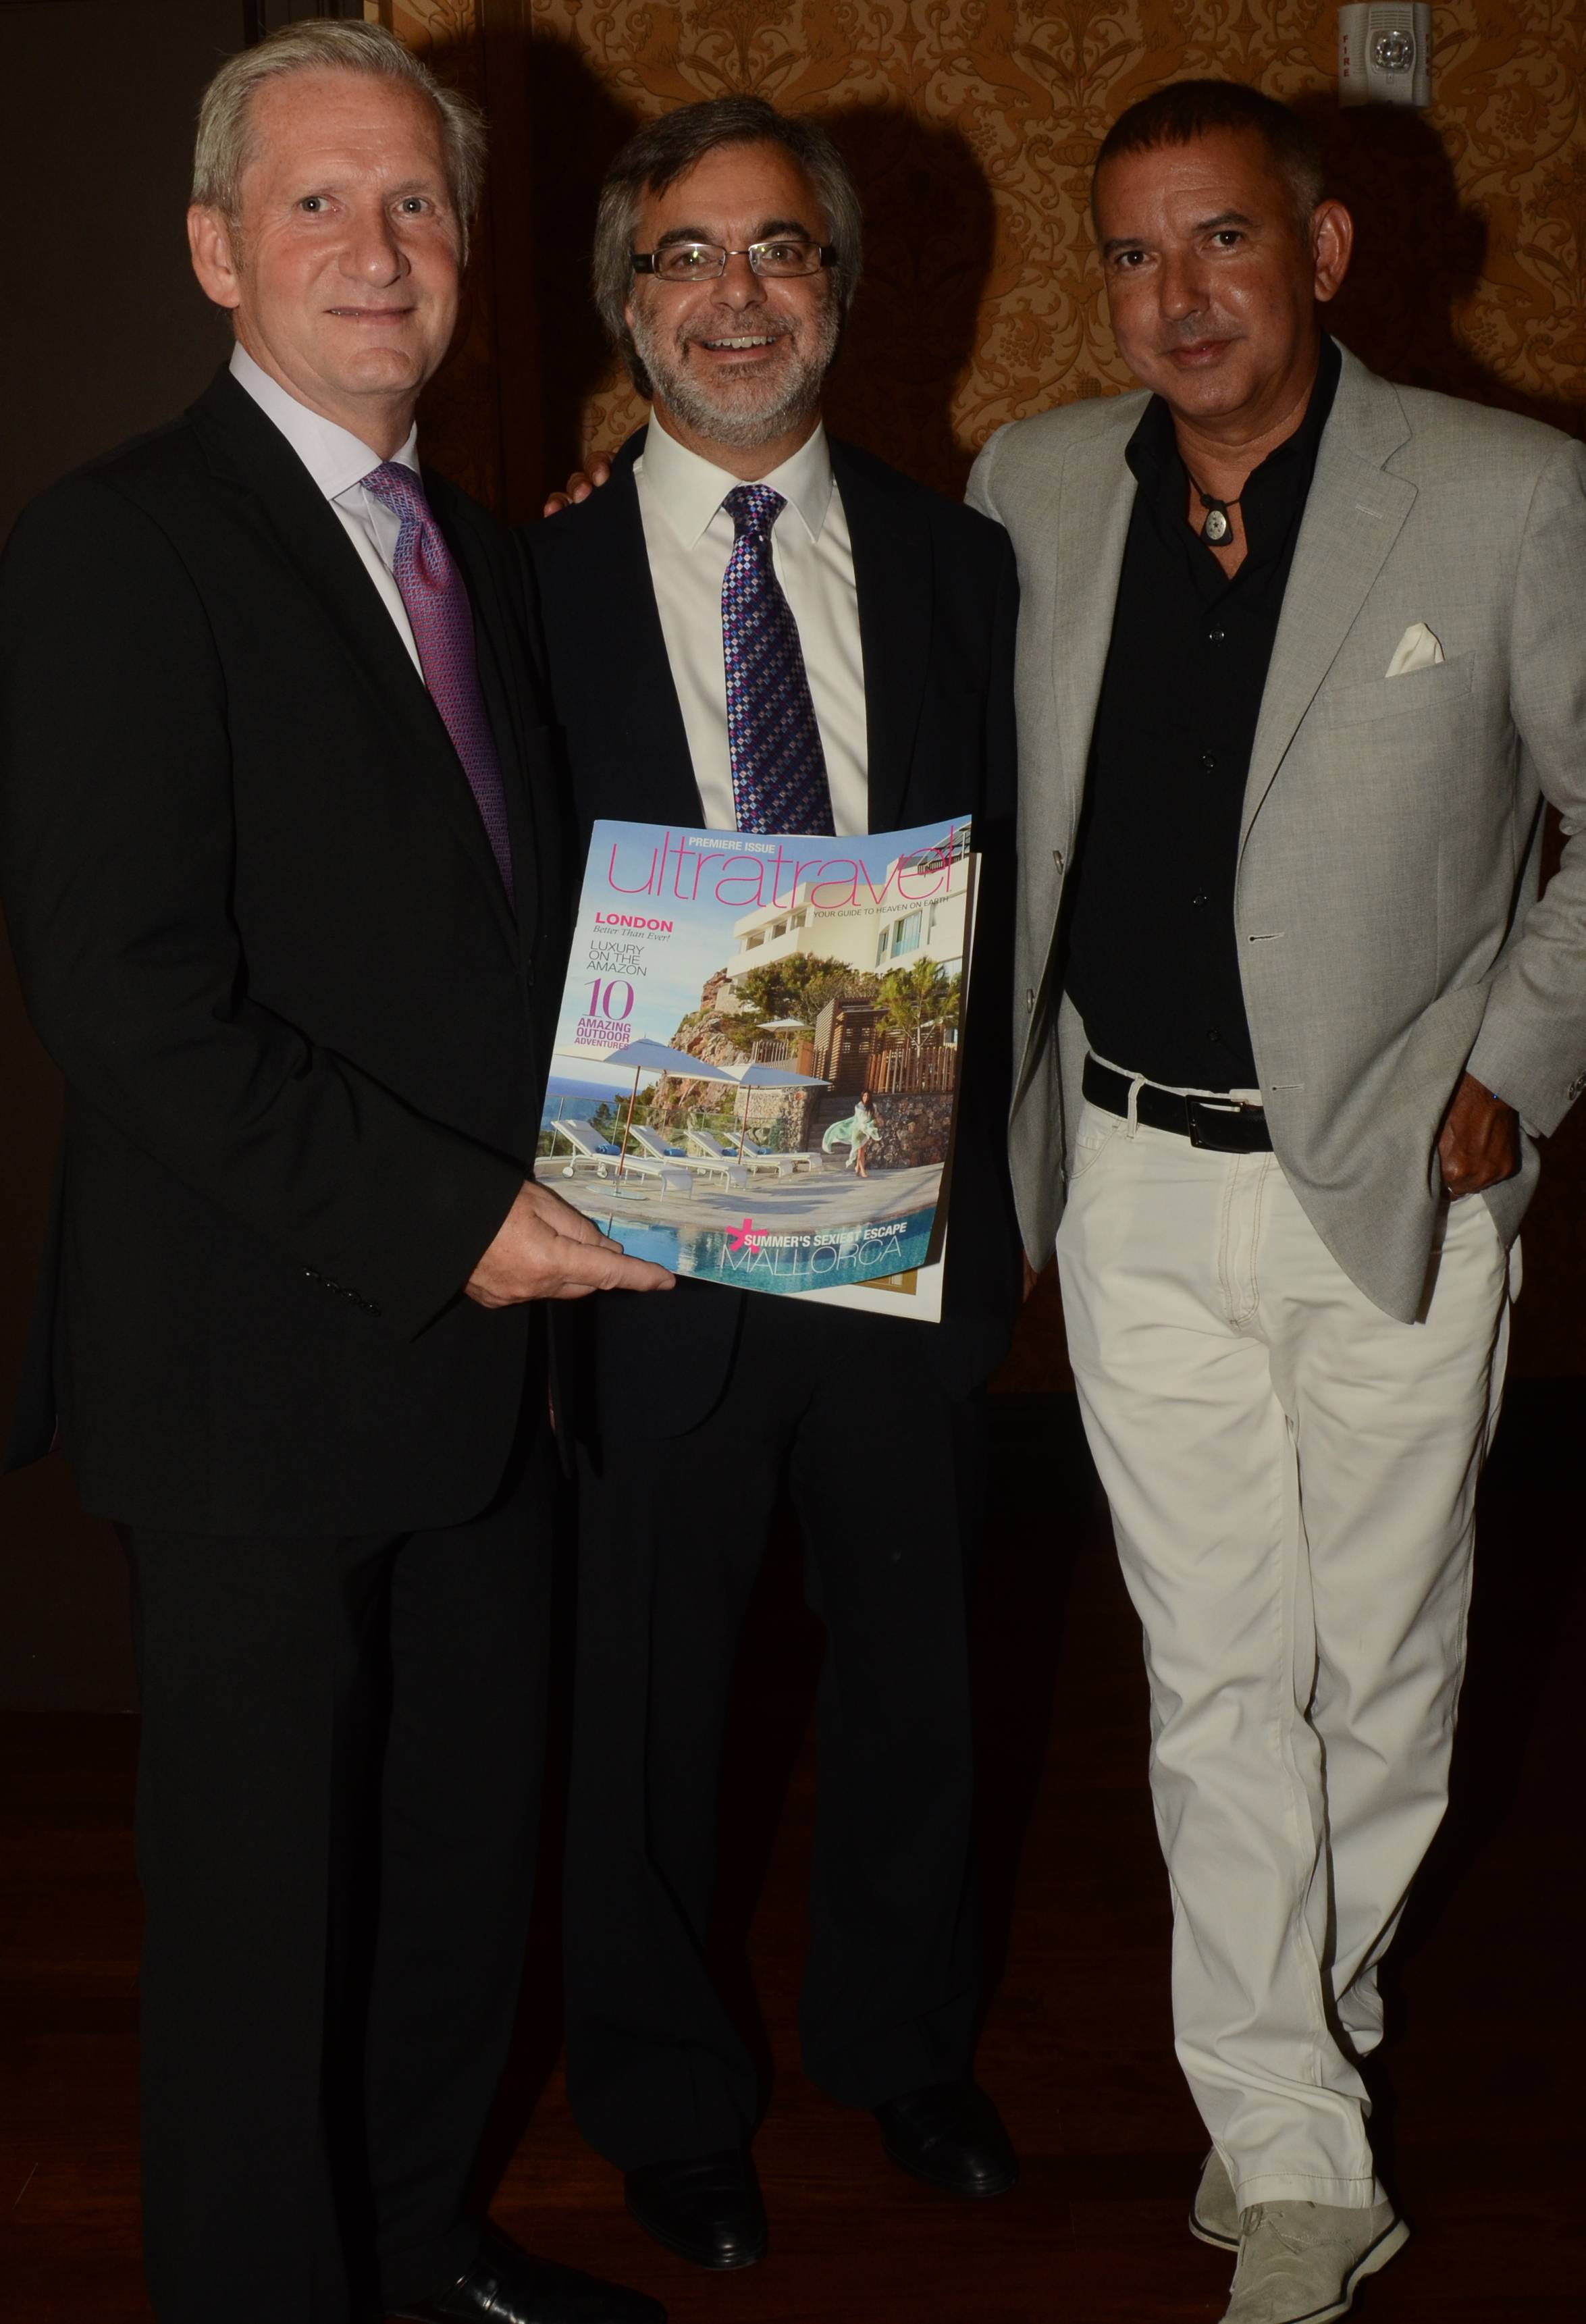 Mike Batt (Chairman of Travel Leaders Group), Nick Perry (Director of Ultratravel) + Carlos Suarez (Creative Director of Whitehaus Media Group) Attend U.S. Launch of Ultratravel Magazine